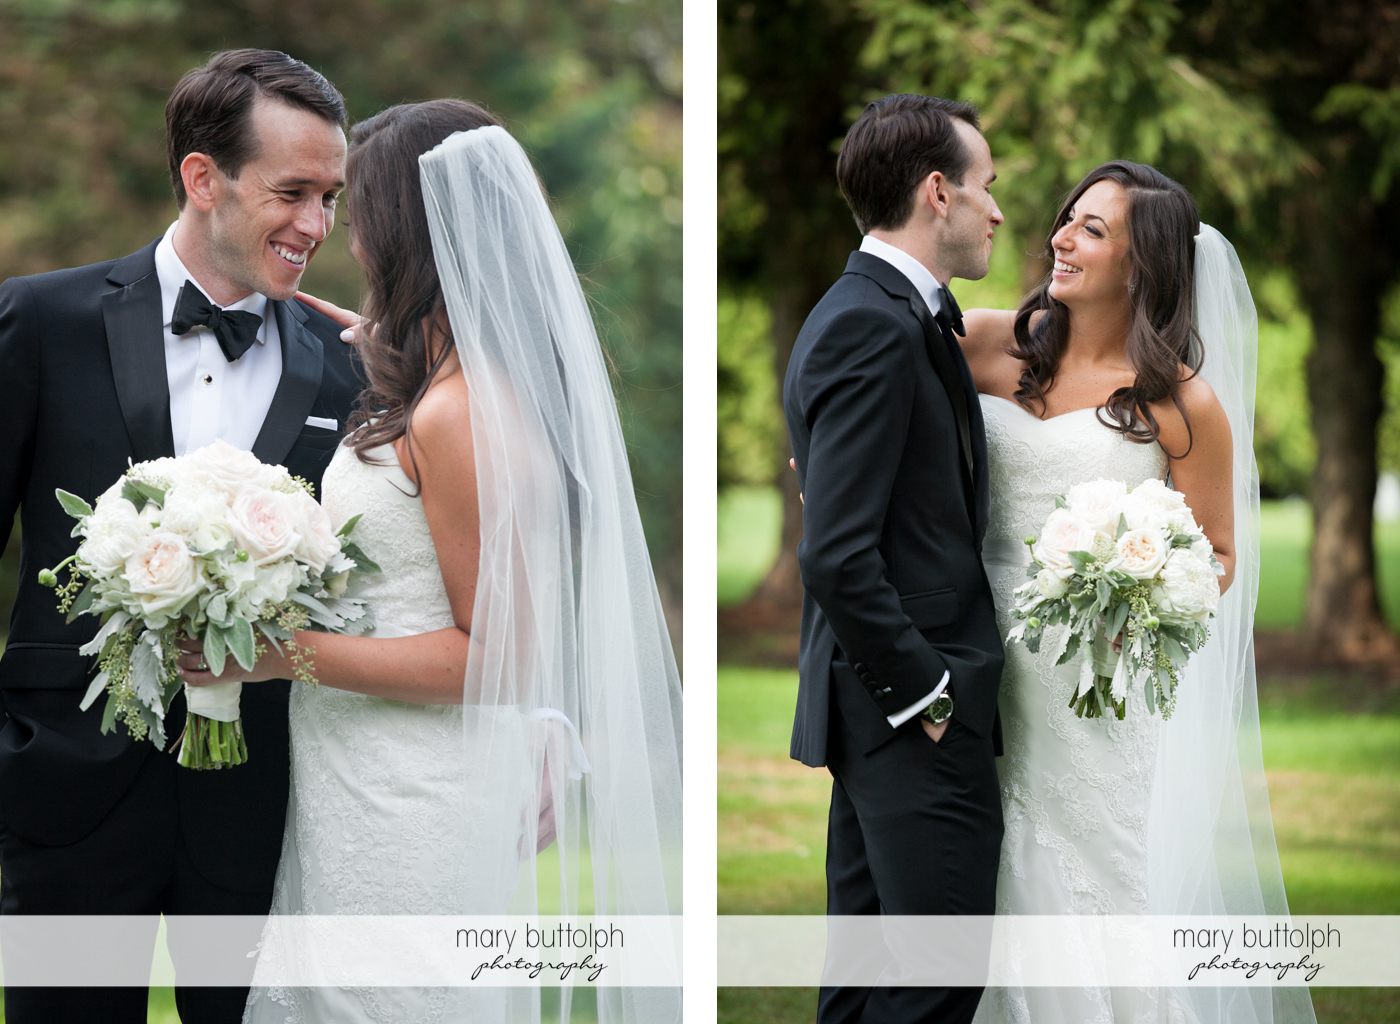 Two different views of the couple in the garden at the Brewster Inn Wedding